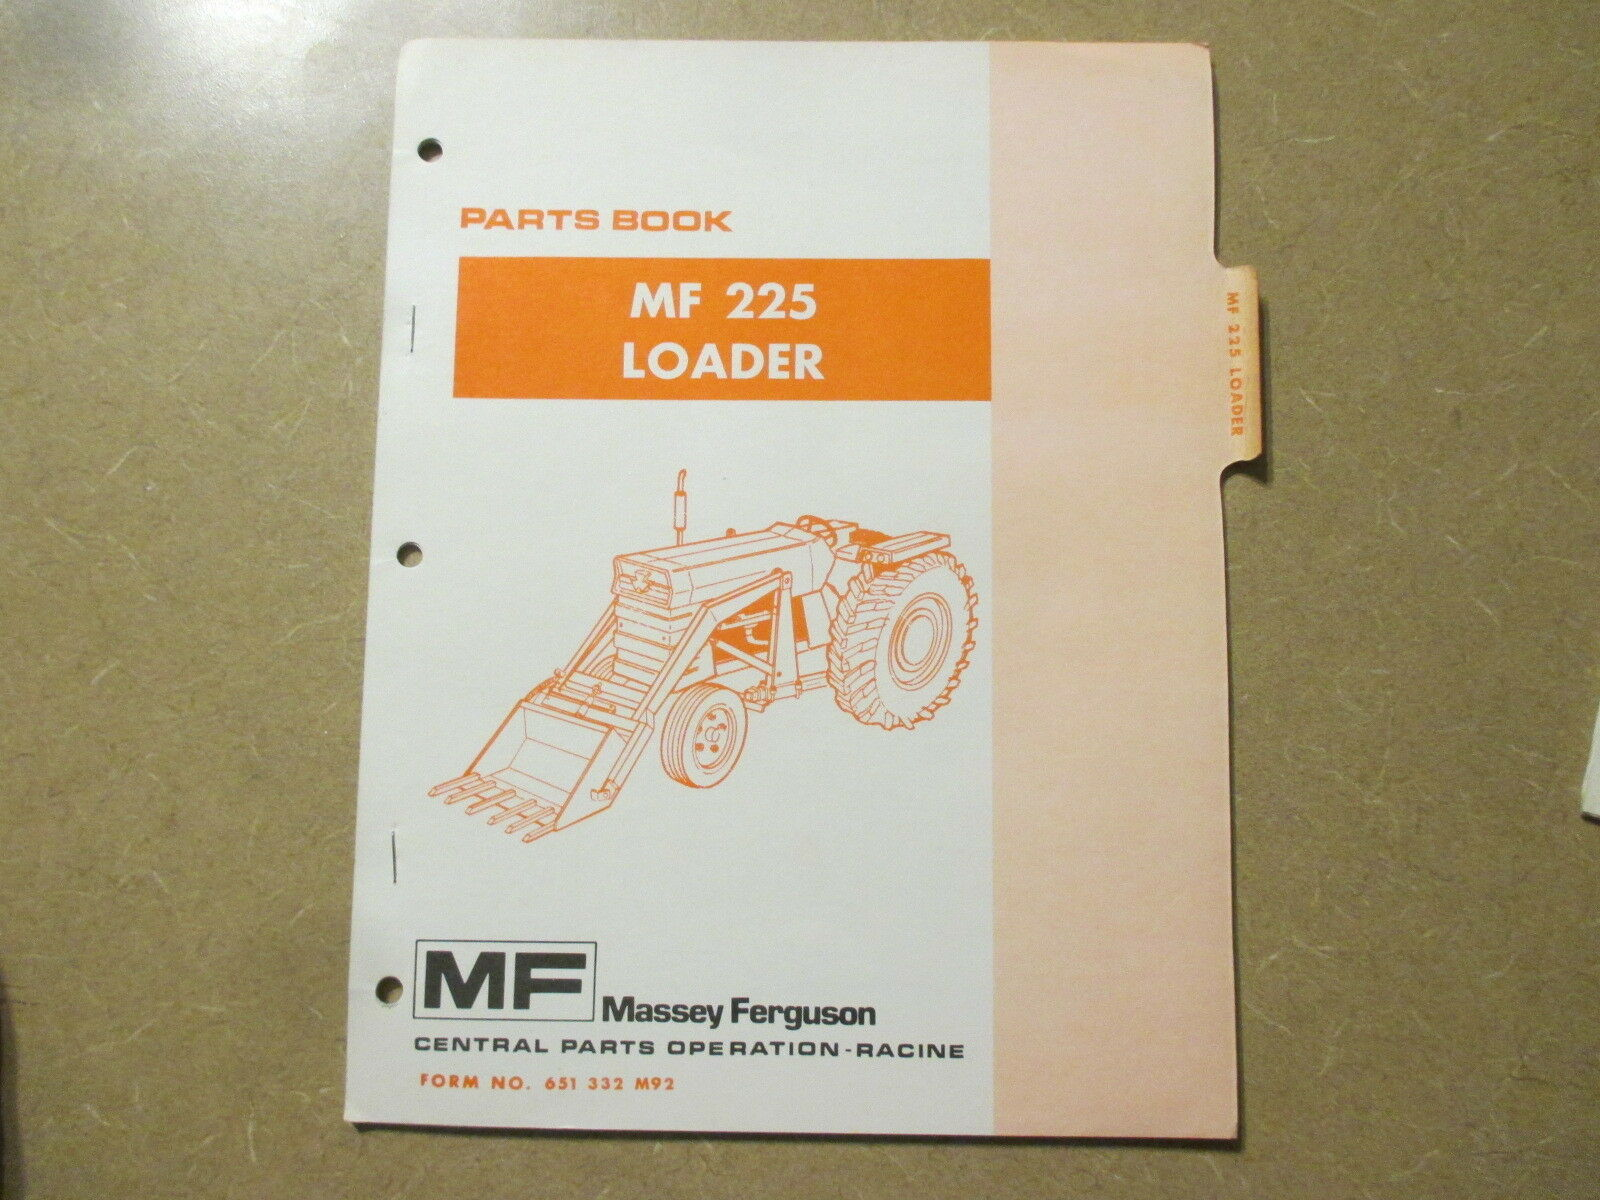 Massey Ferguson 225 loader parts manual 1 of 1Only 1 available ...